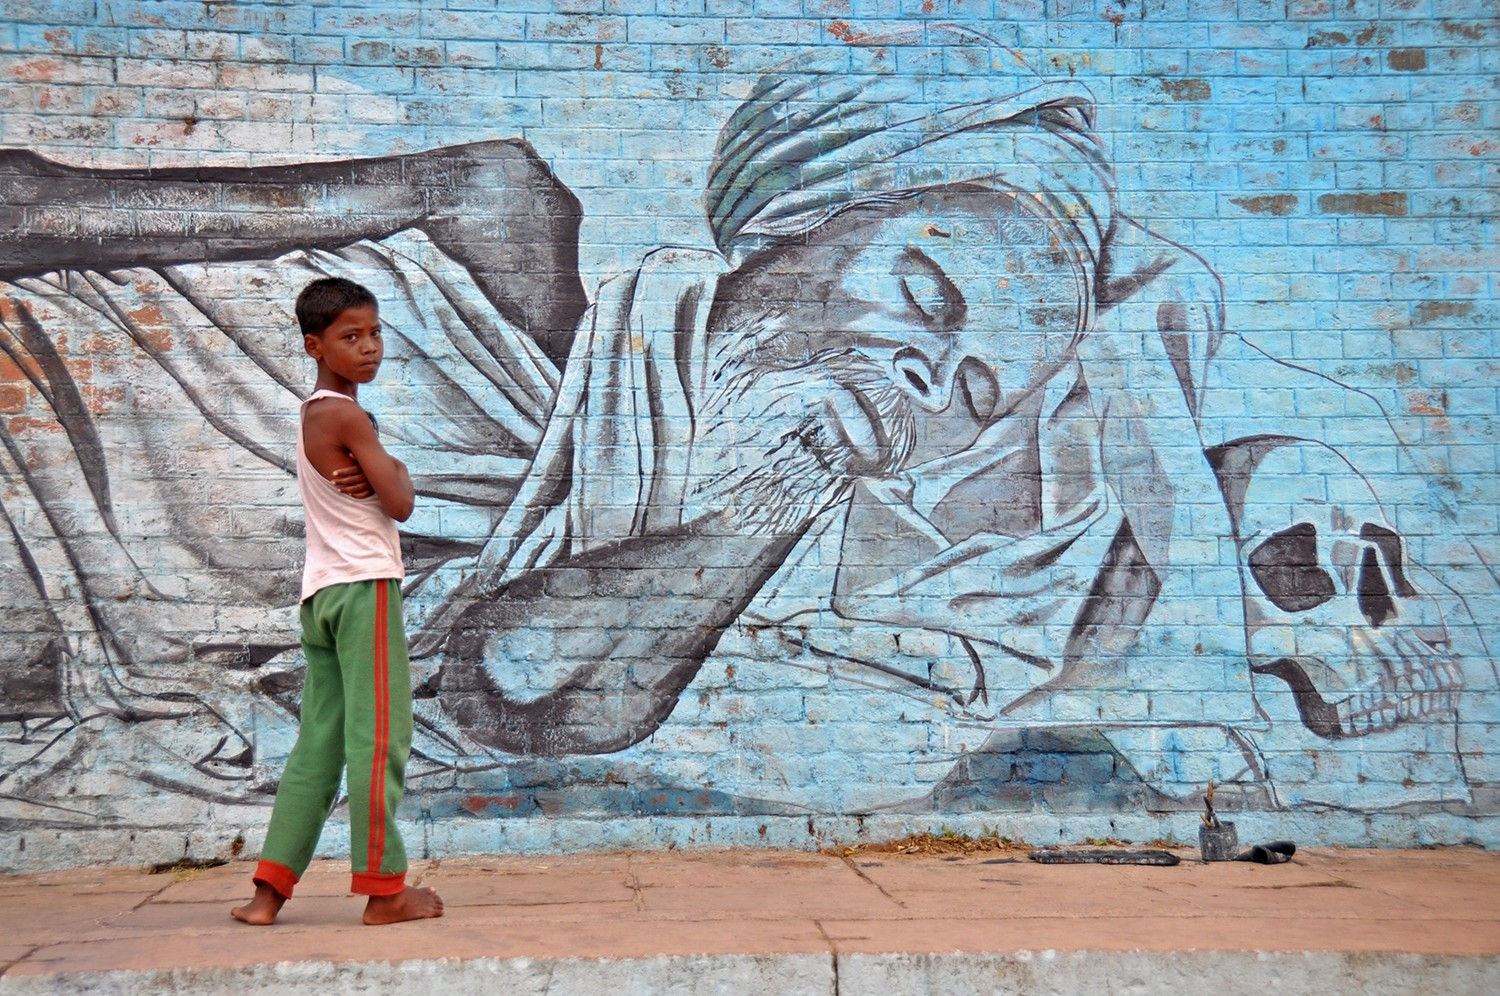 Street mural and little boy in India